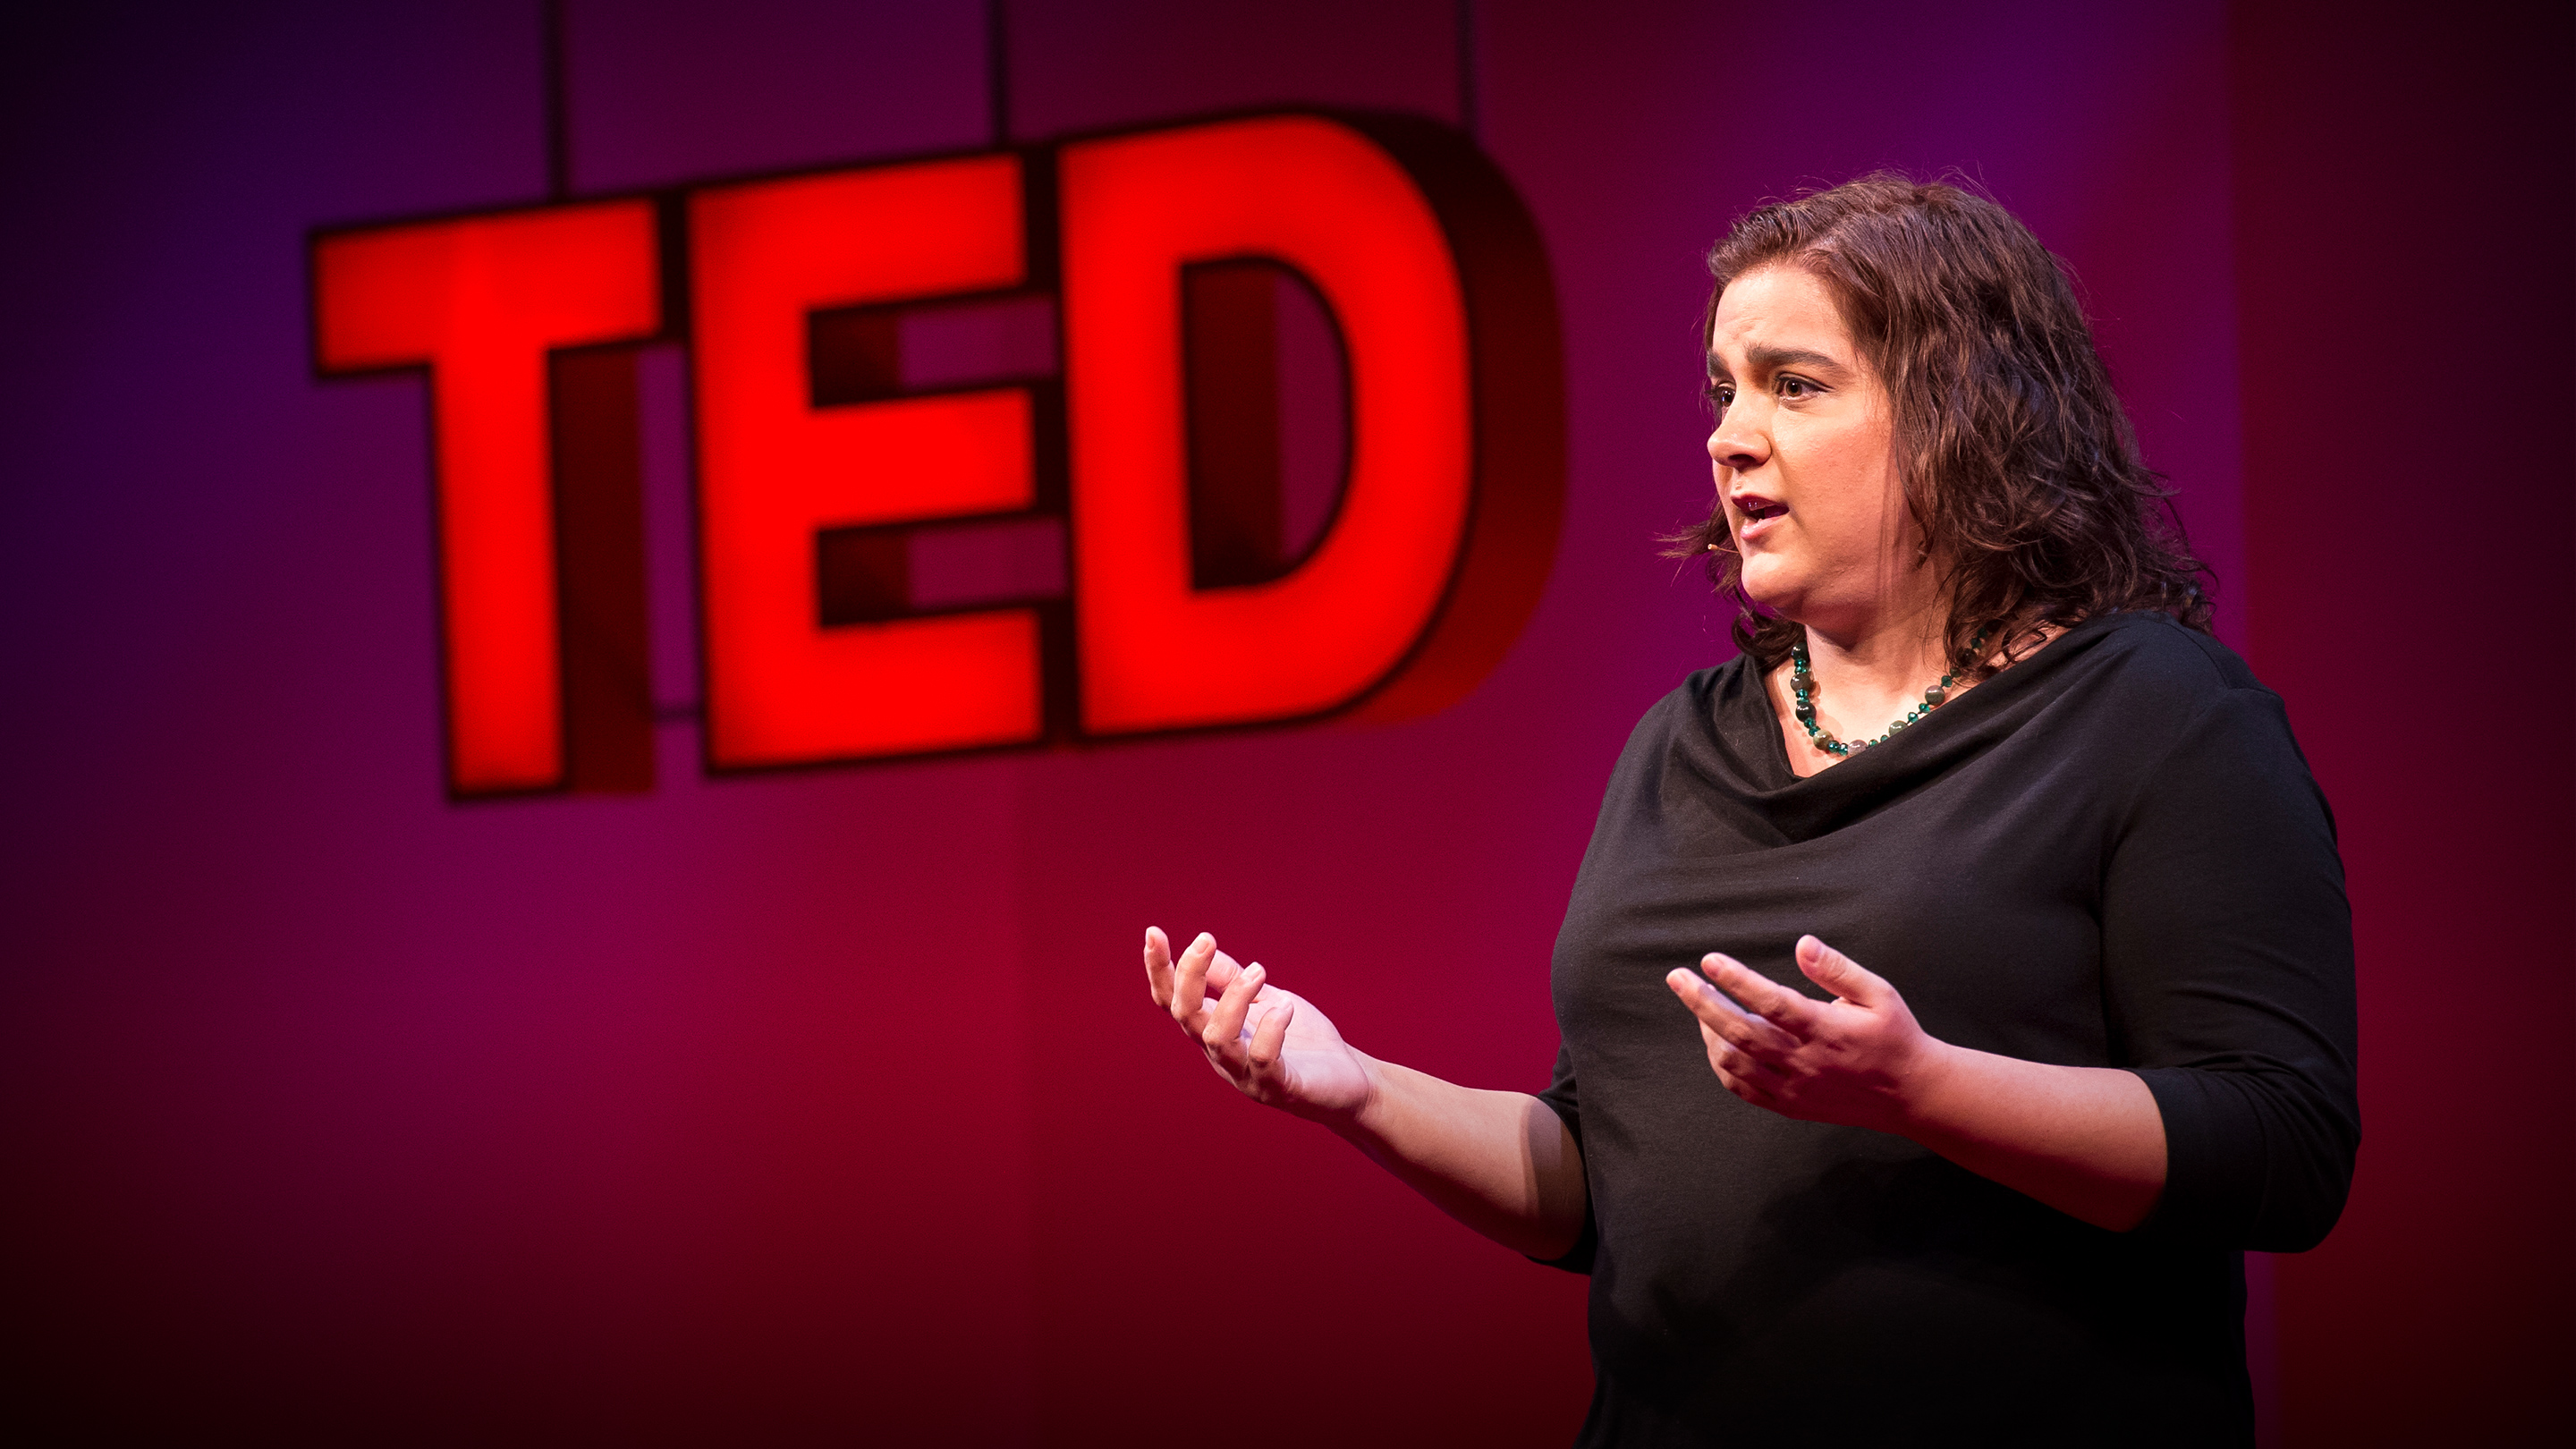 Alanna Shaikh: How I'm preparing to get Alzheimer's | TED Talk